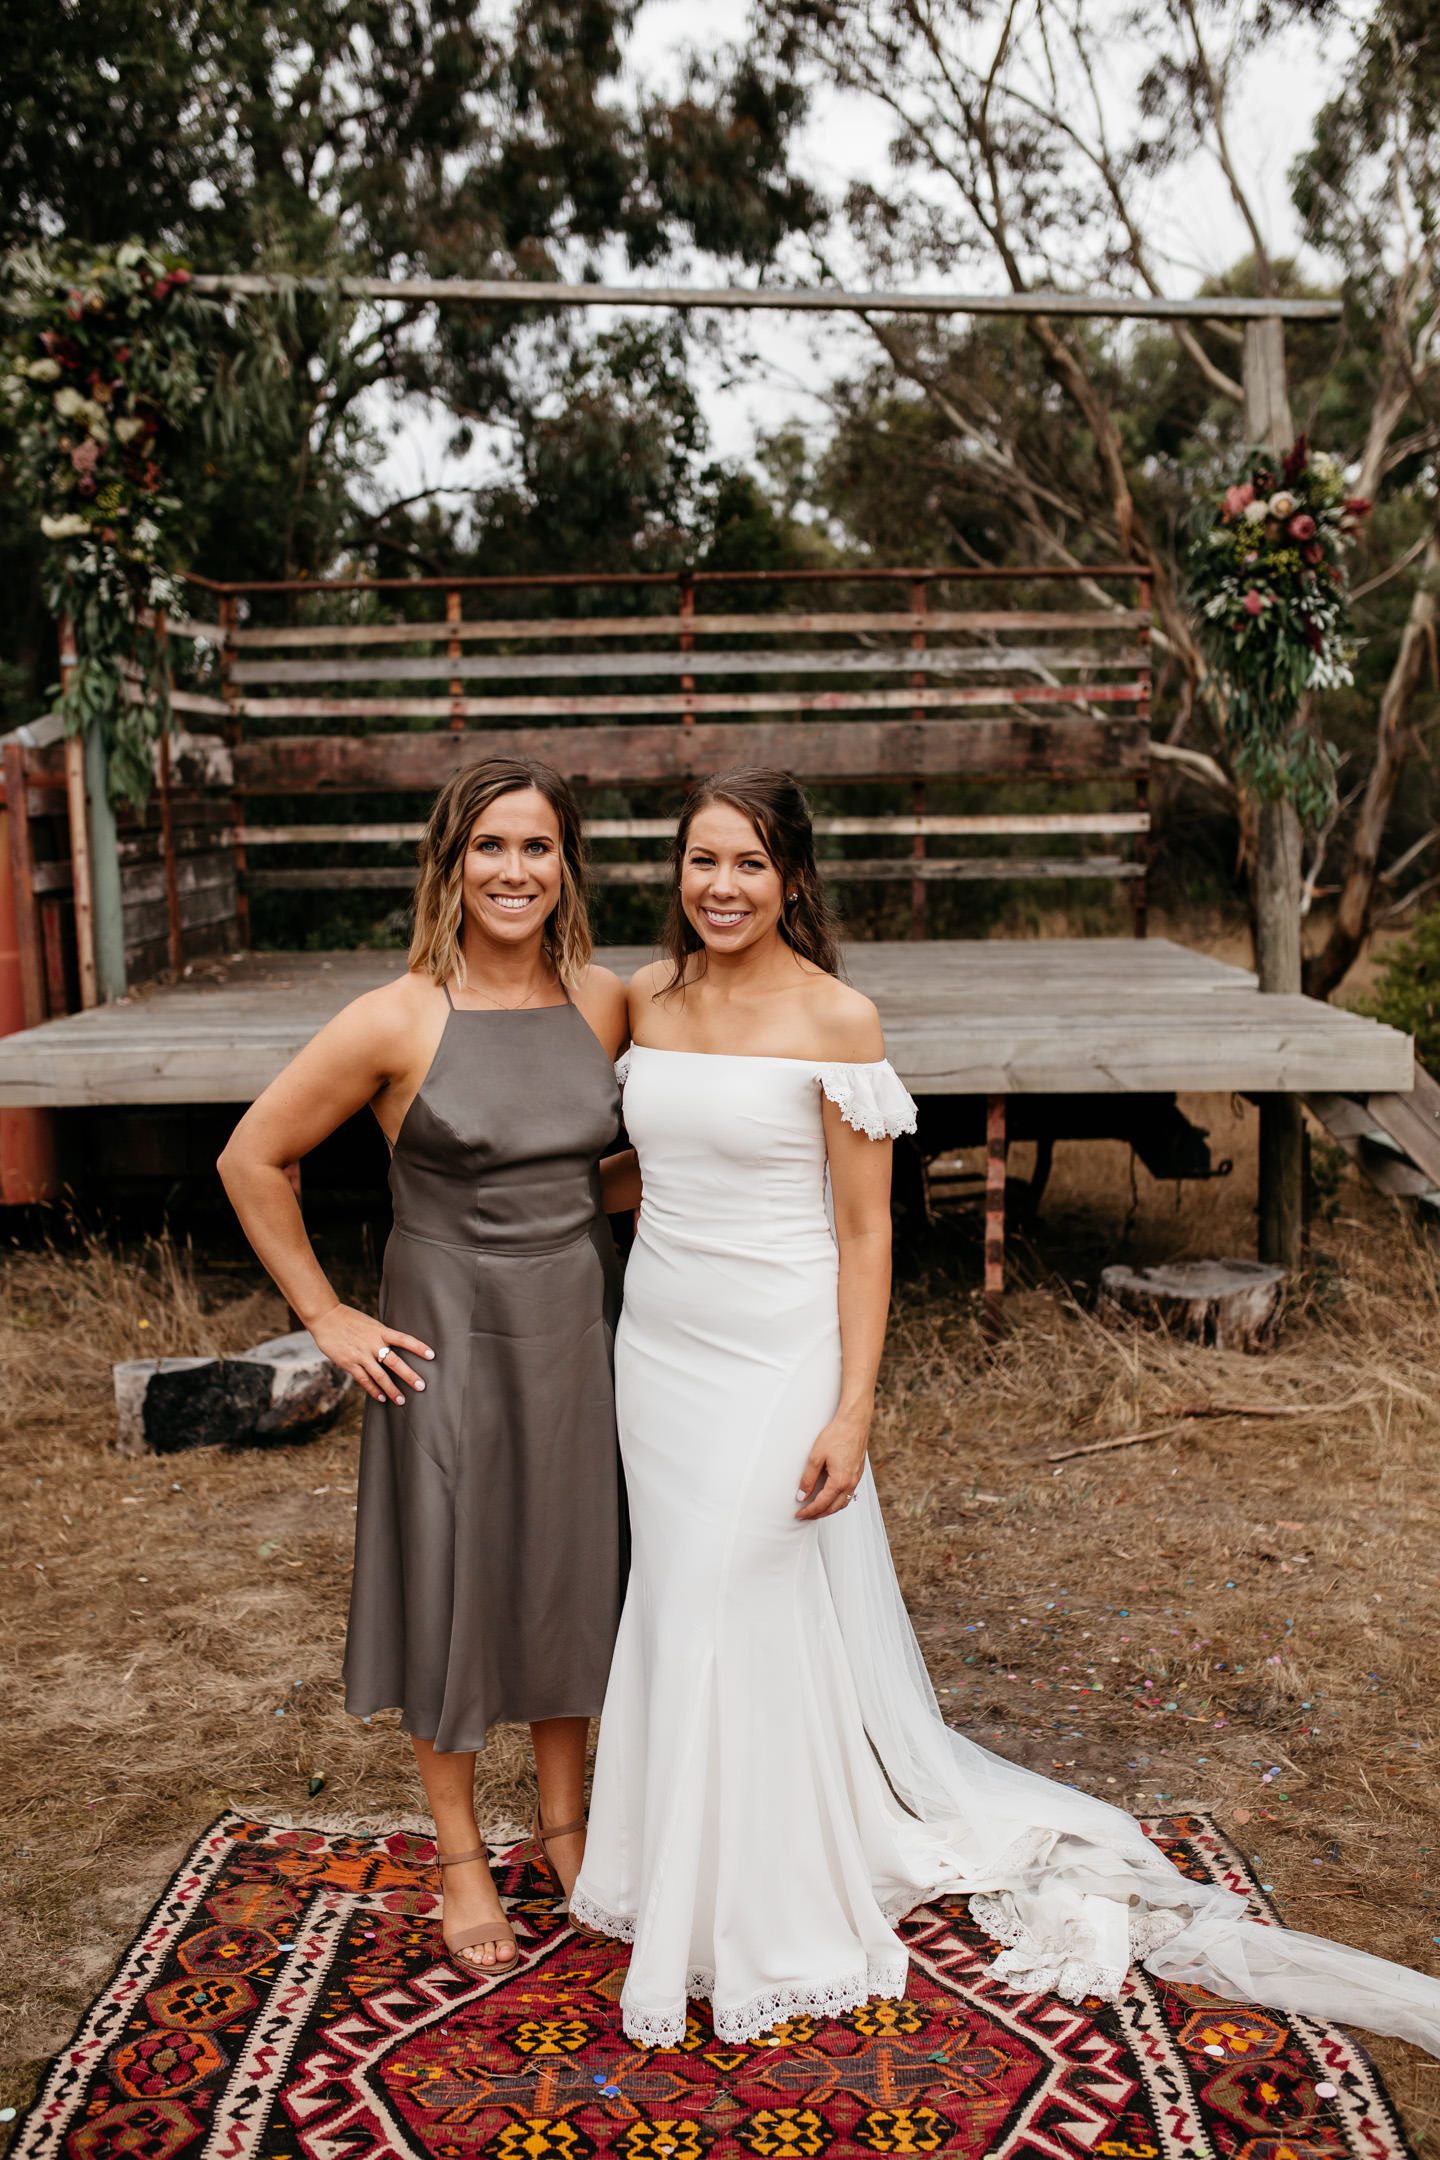 Laura and her bridesmaids wearing khaki halter dress